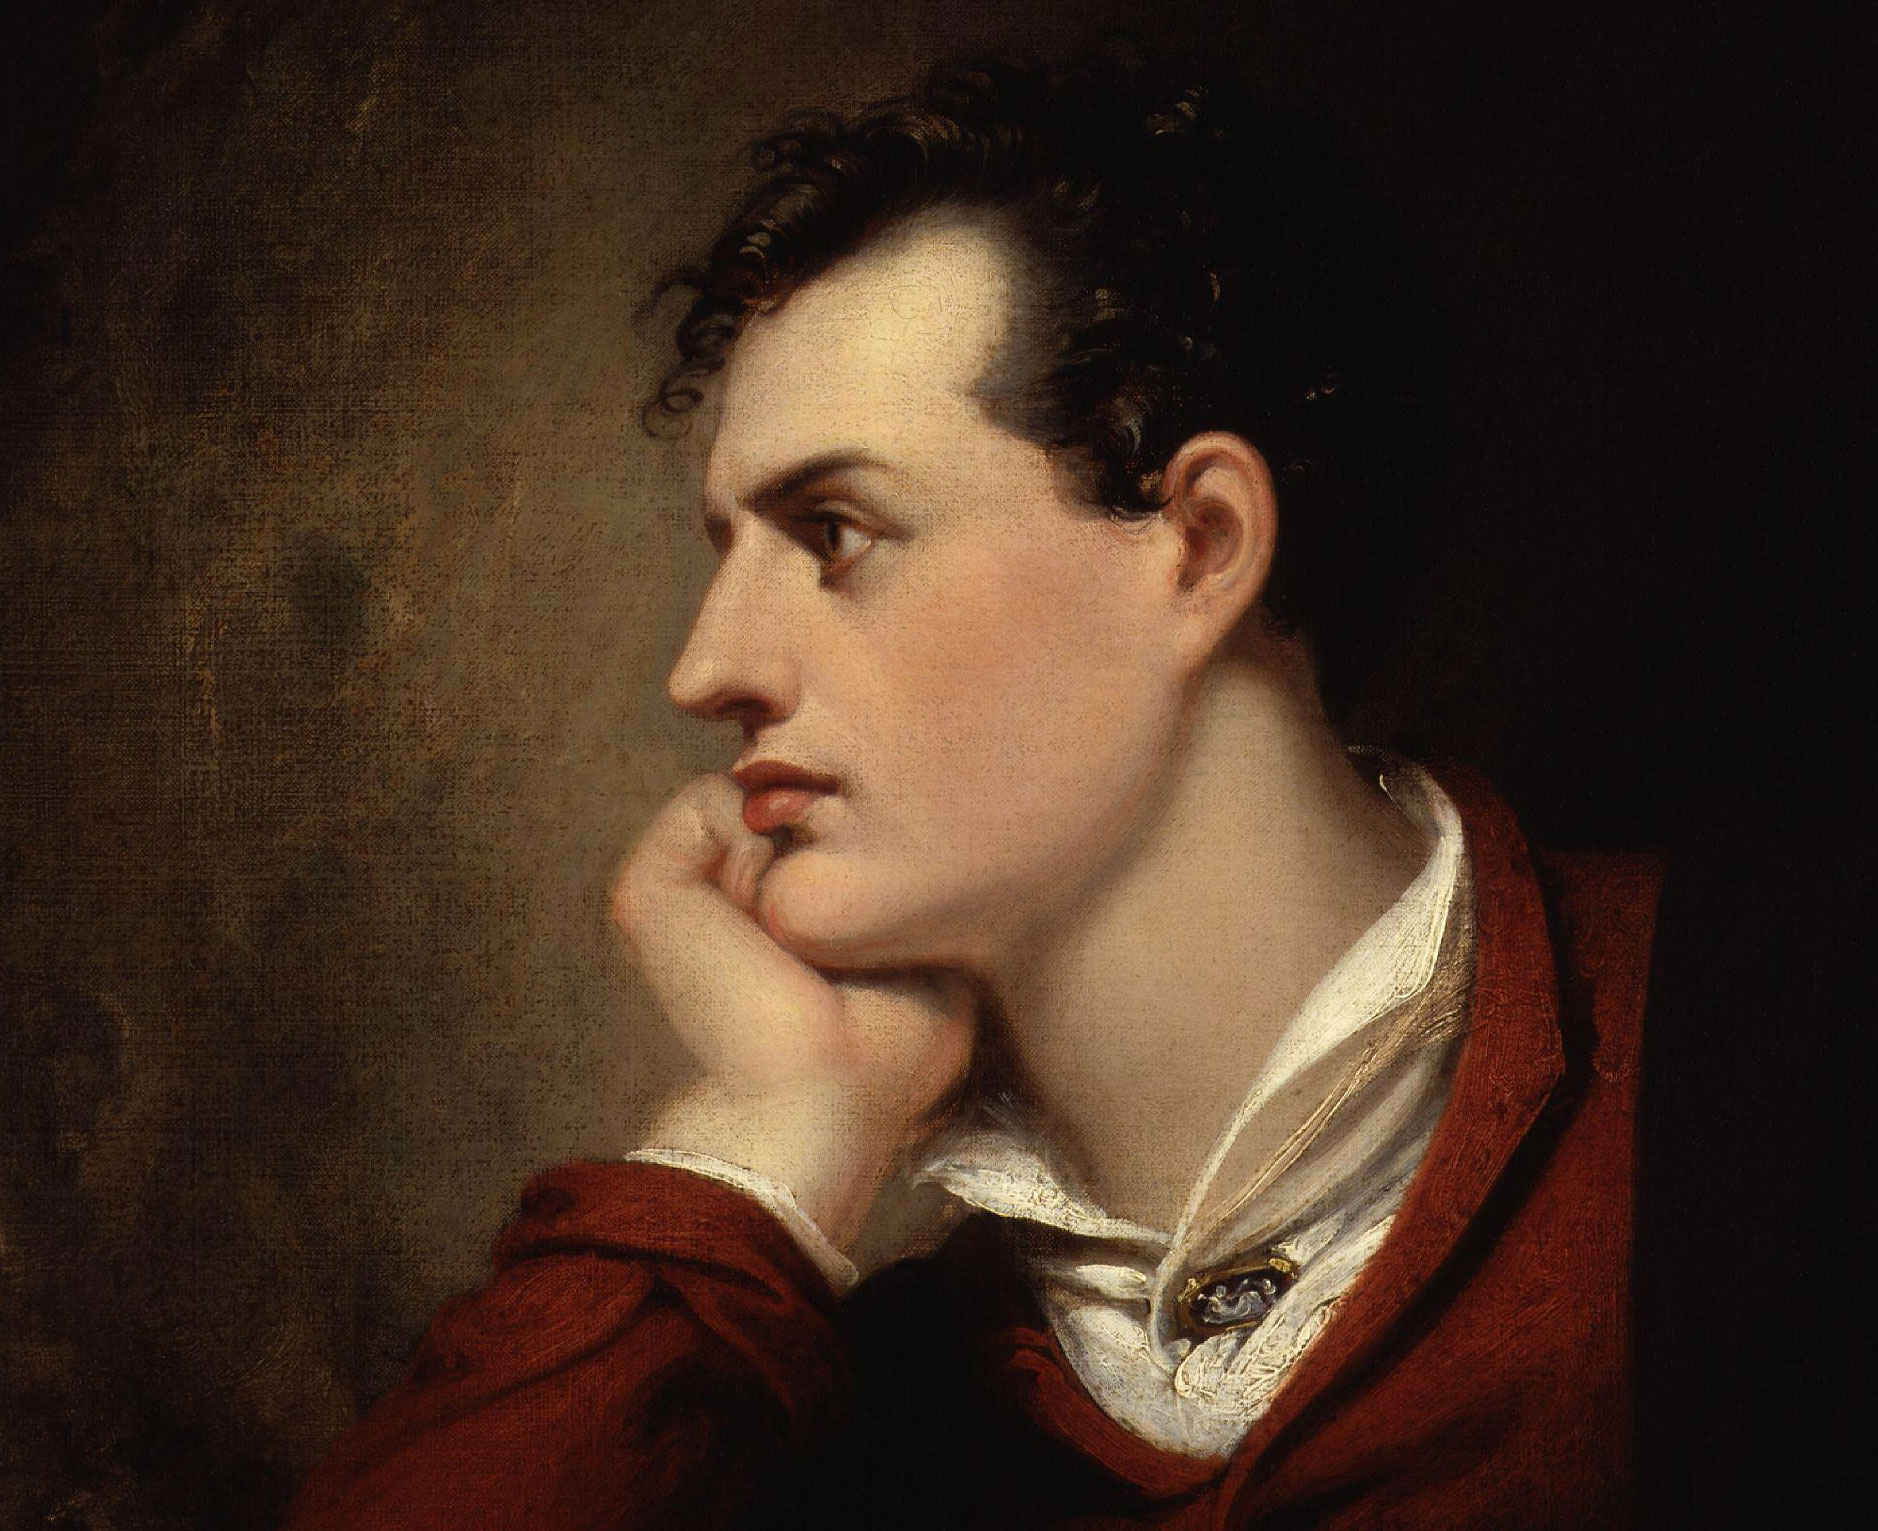 an introduction to the george gordon lord byron The younger romantics: shelley, keats, and byron description: the course will examine the works and lives of three major english romantic poets, percy bysshe shelley, john keats, and george gordon, lord byron, with attention to their political, social, and intellectual contexts all were younger than the other major romantics all died young.